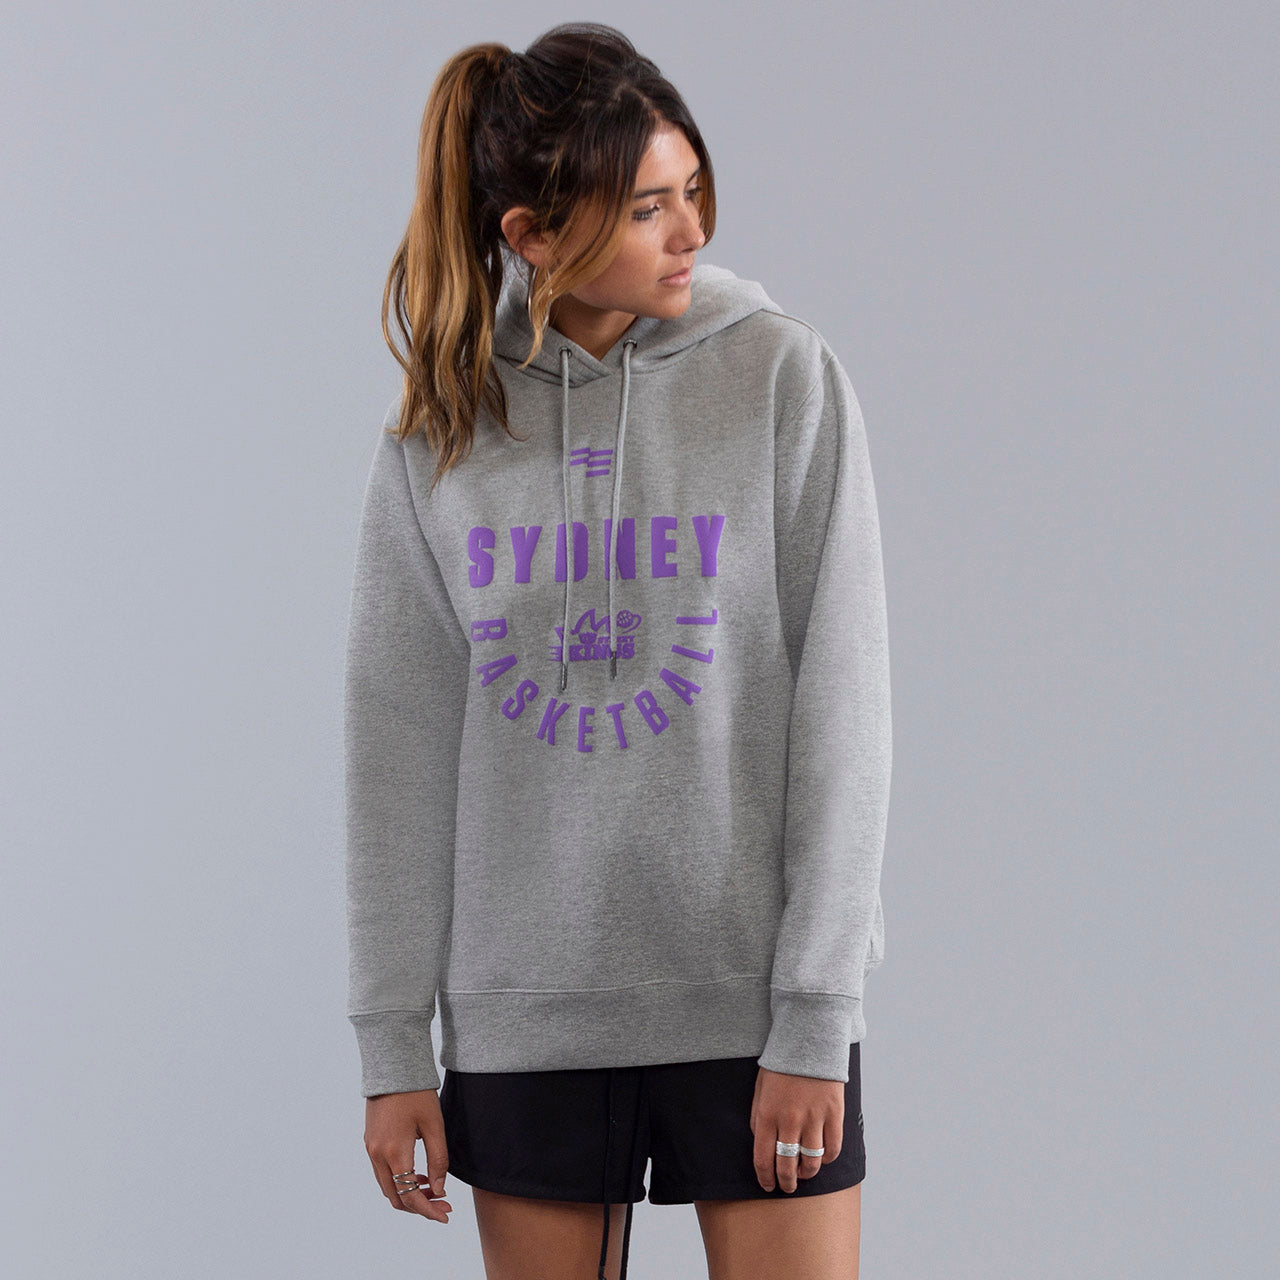 Sydney Kings Womens Key Hoodie